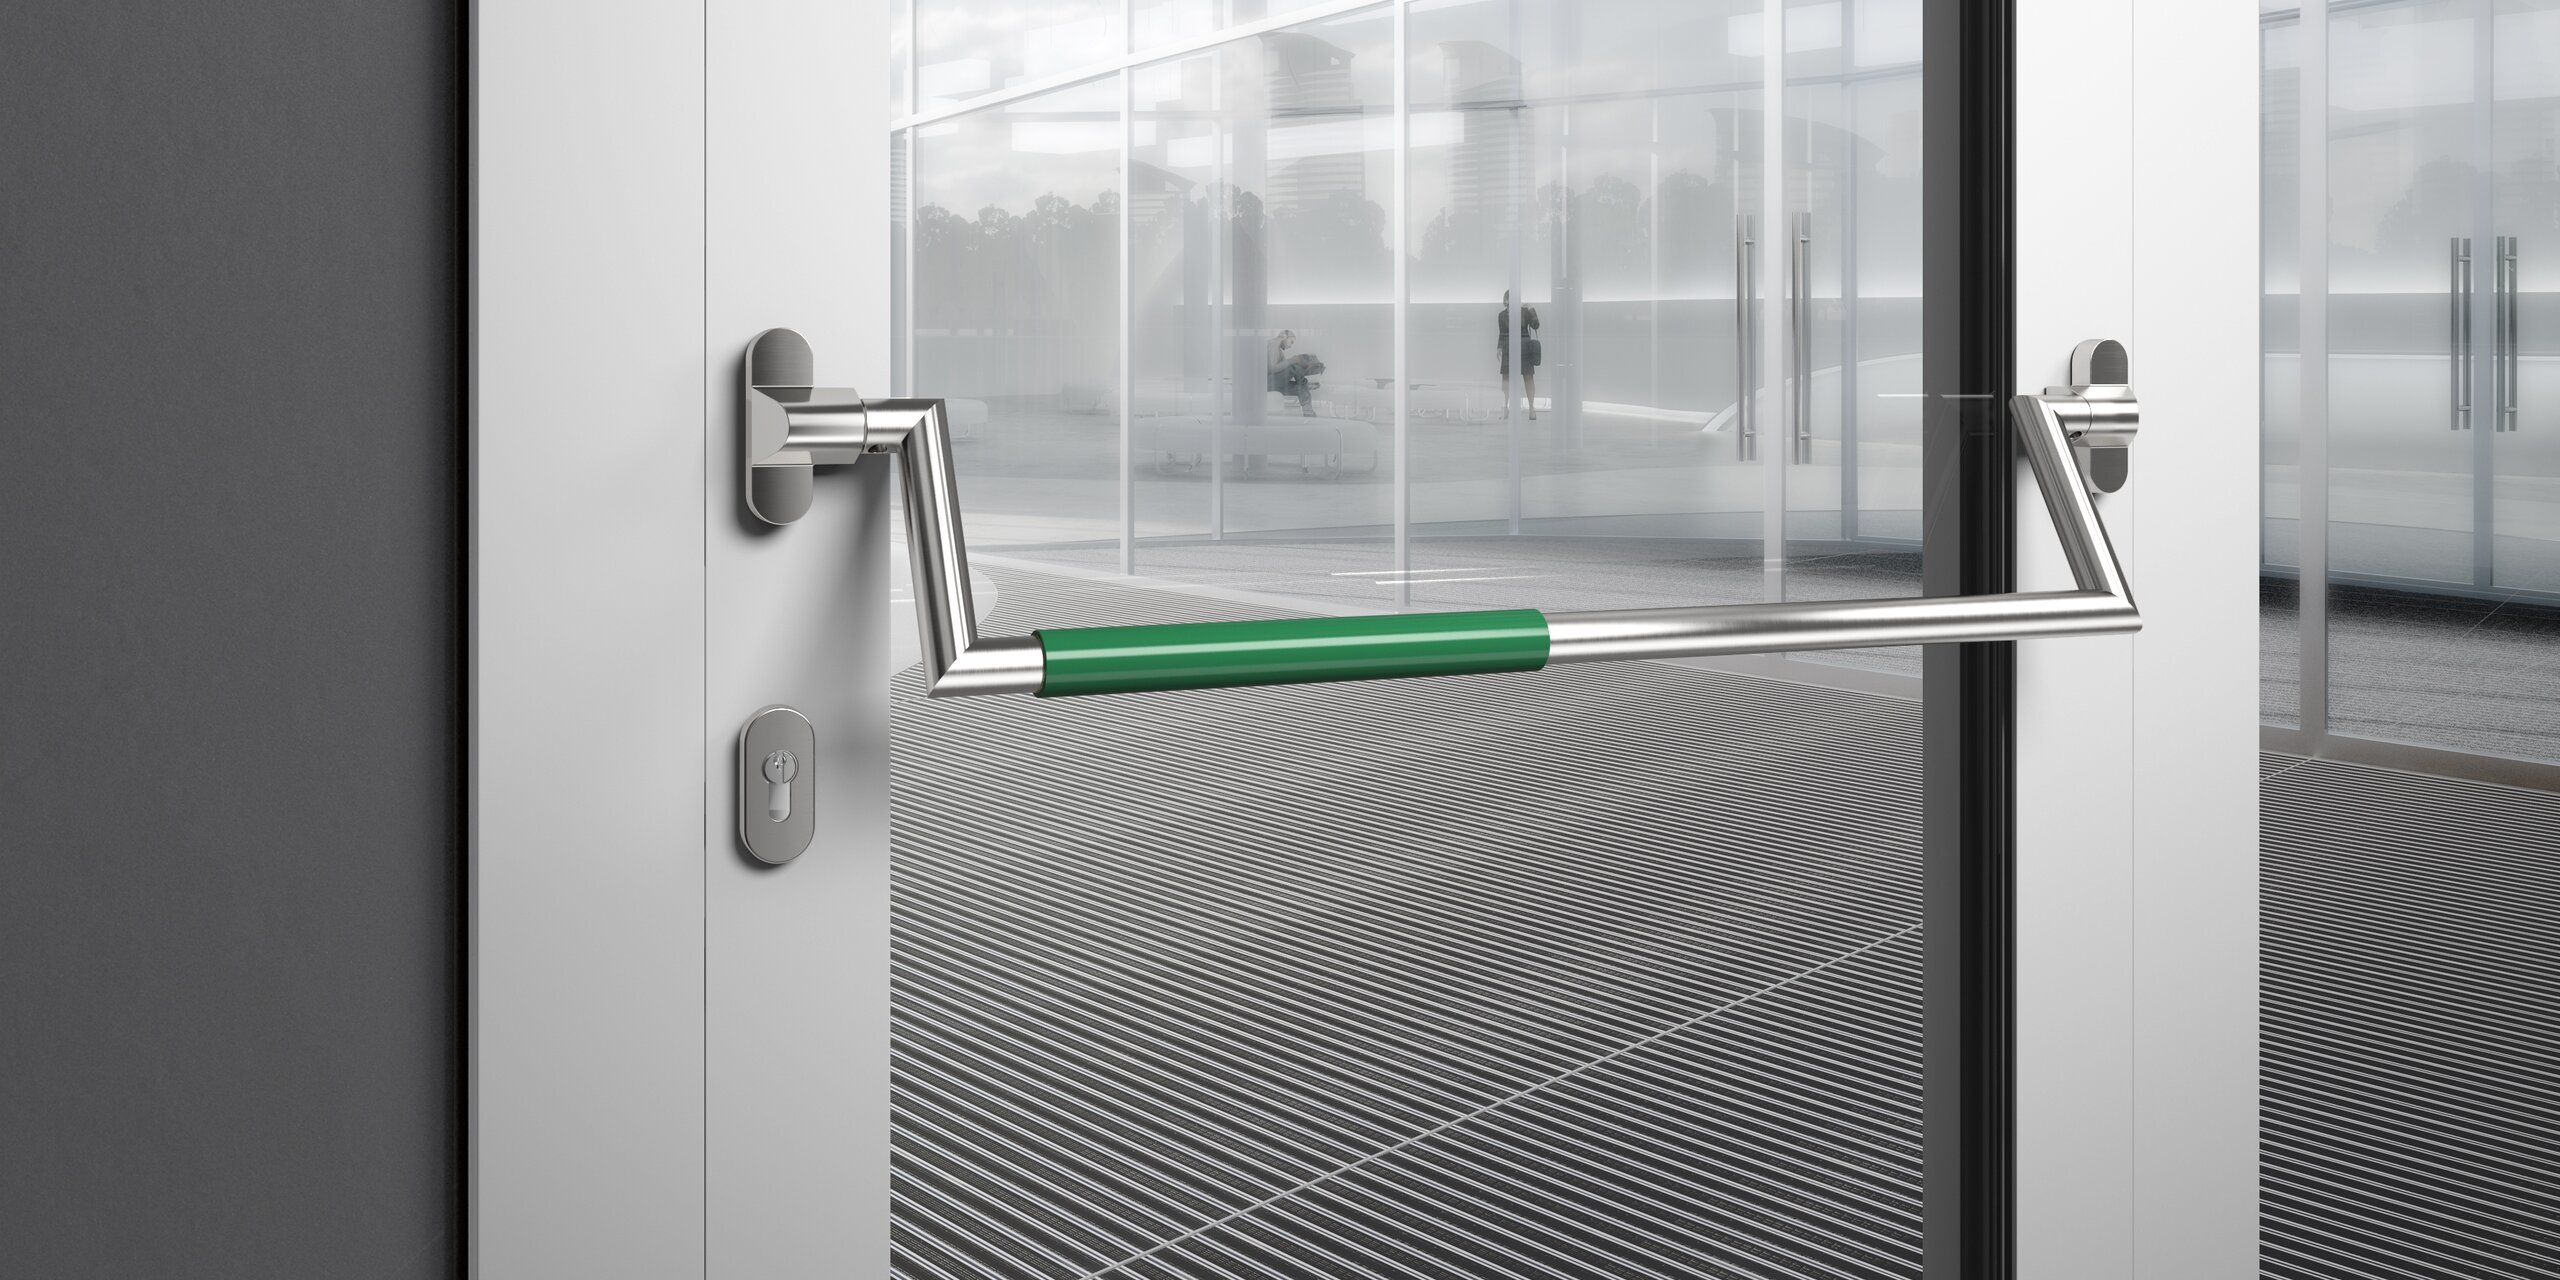 Panic Bar From Hewi Safety At The Escape Door Hewi